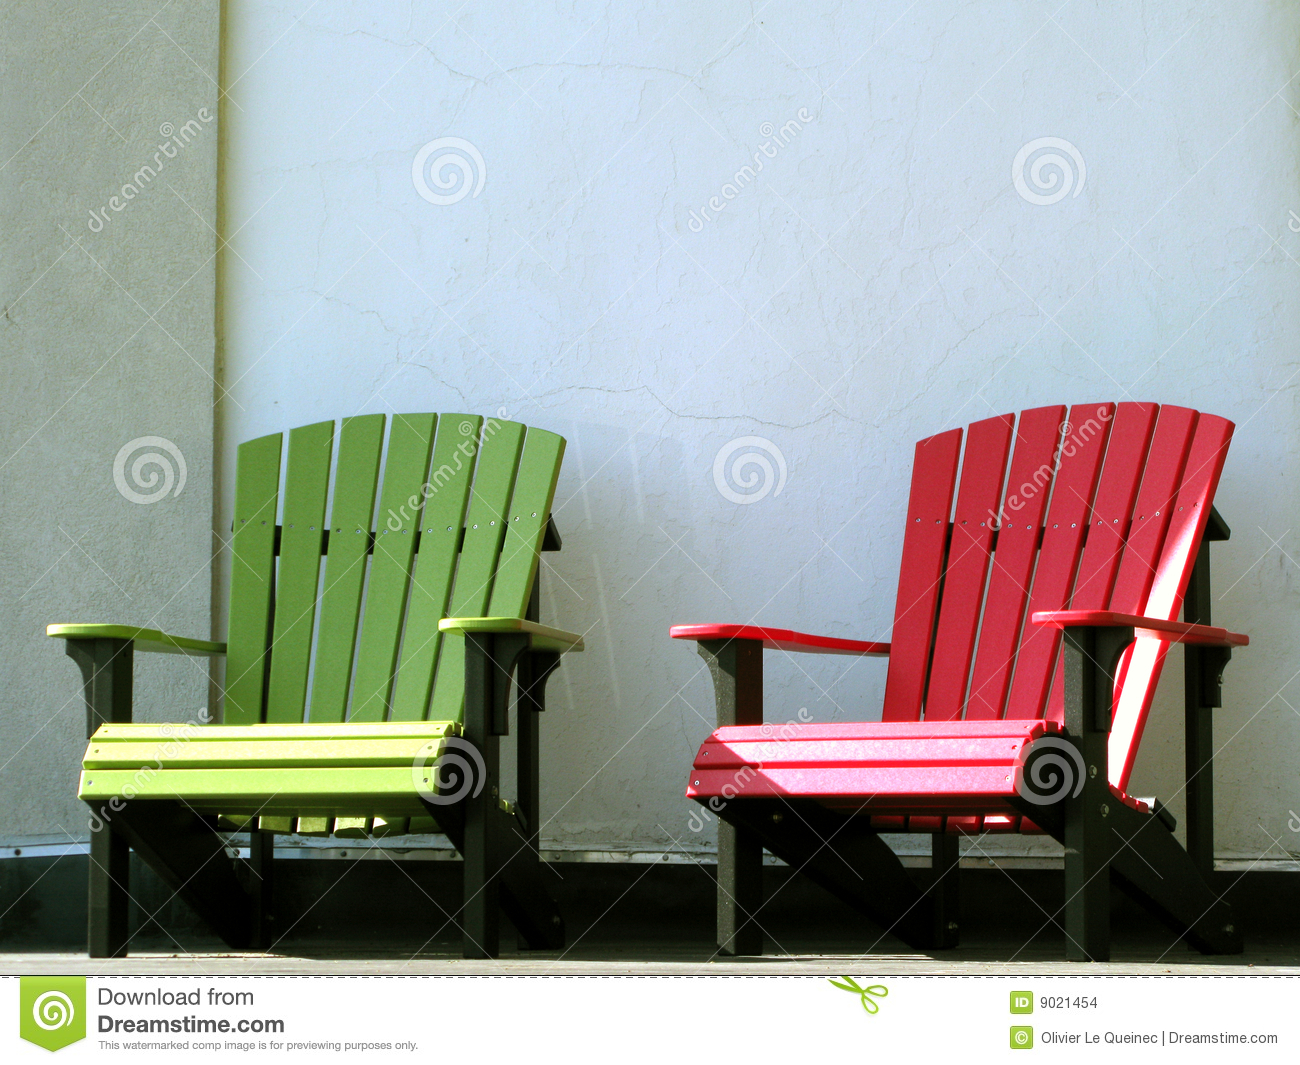 Outdoor Furniture Adirondack Chairs on House Porch